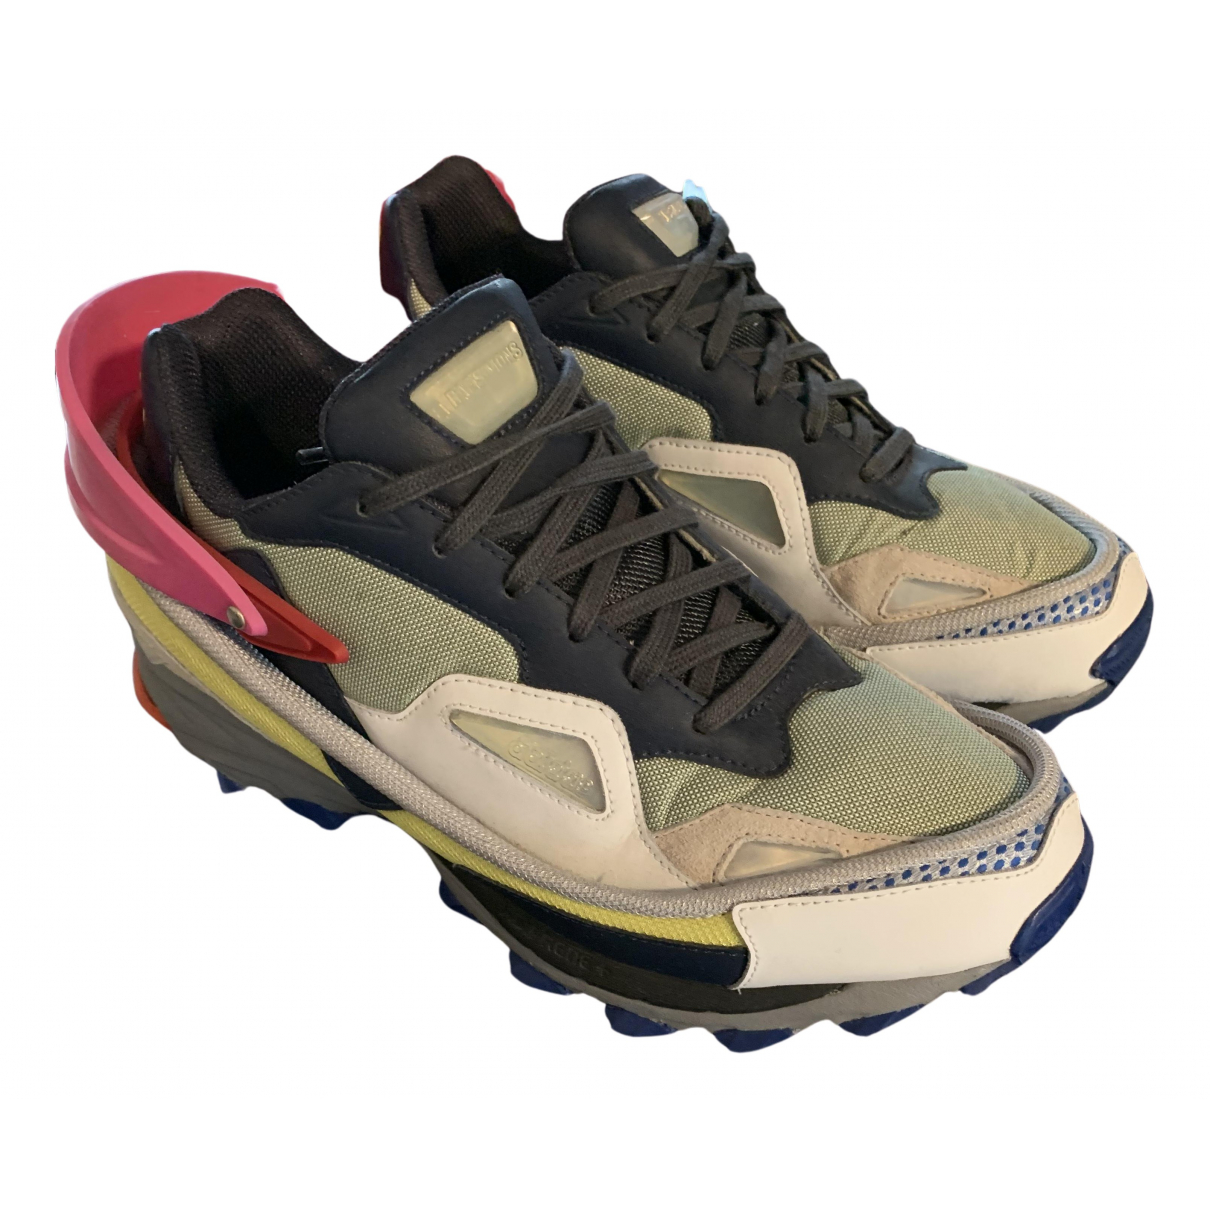 Adidas X Raf Simons - Baskets RS Ozweego pour homme en toile - anthracite